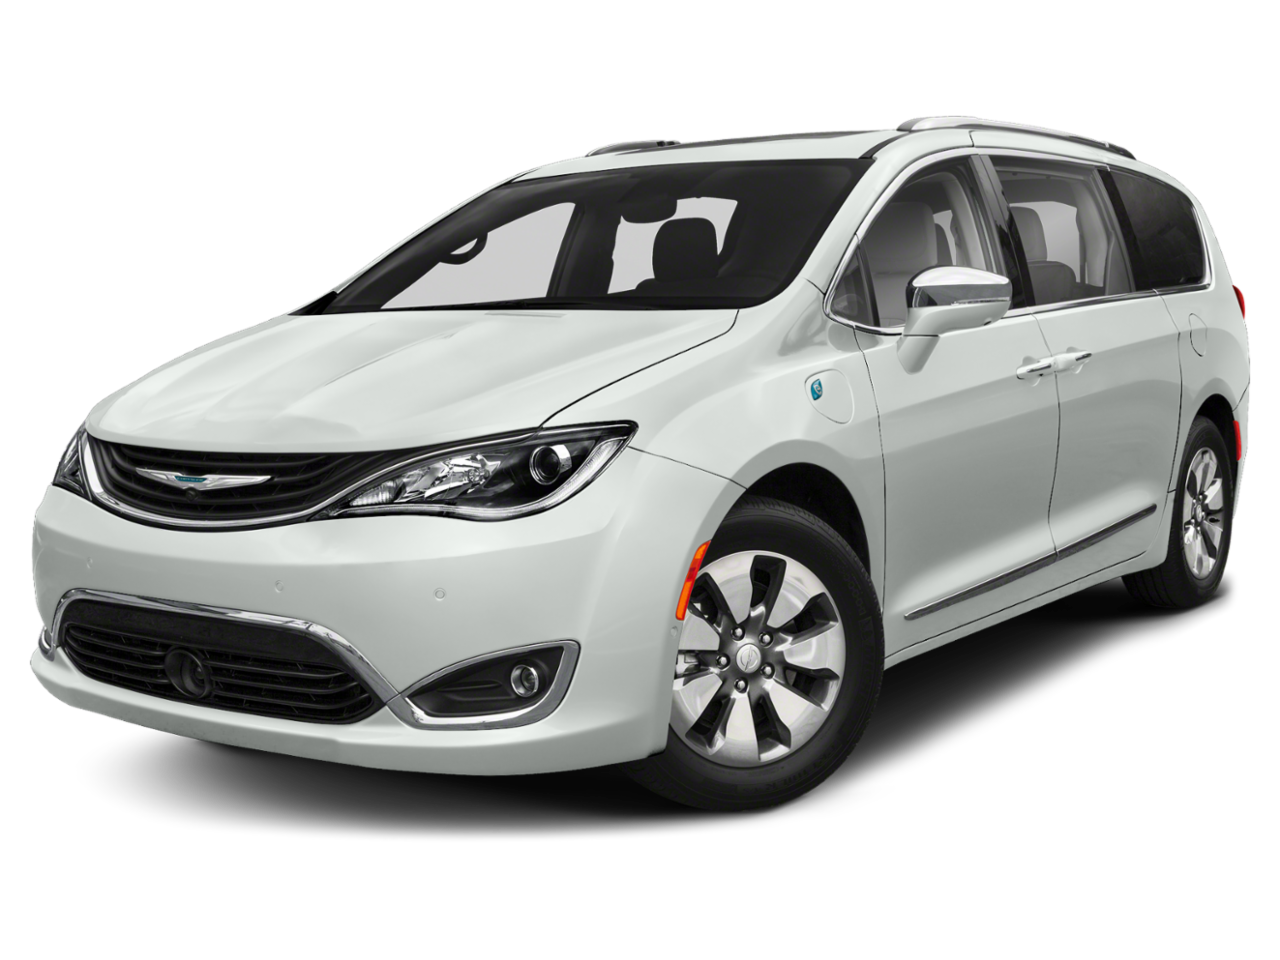 New 2020 Chrysler Pacifica Hybrid Limited 35th Anniversary